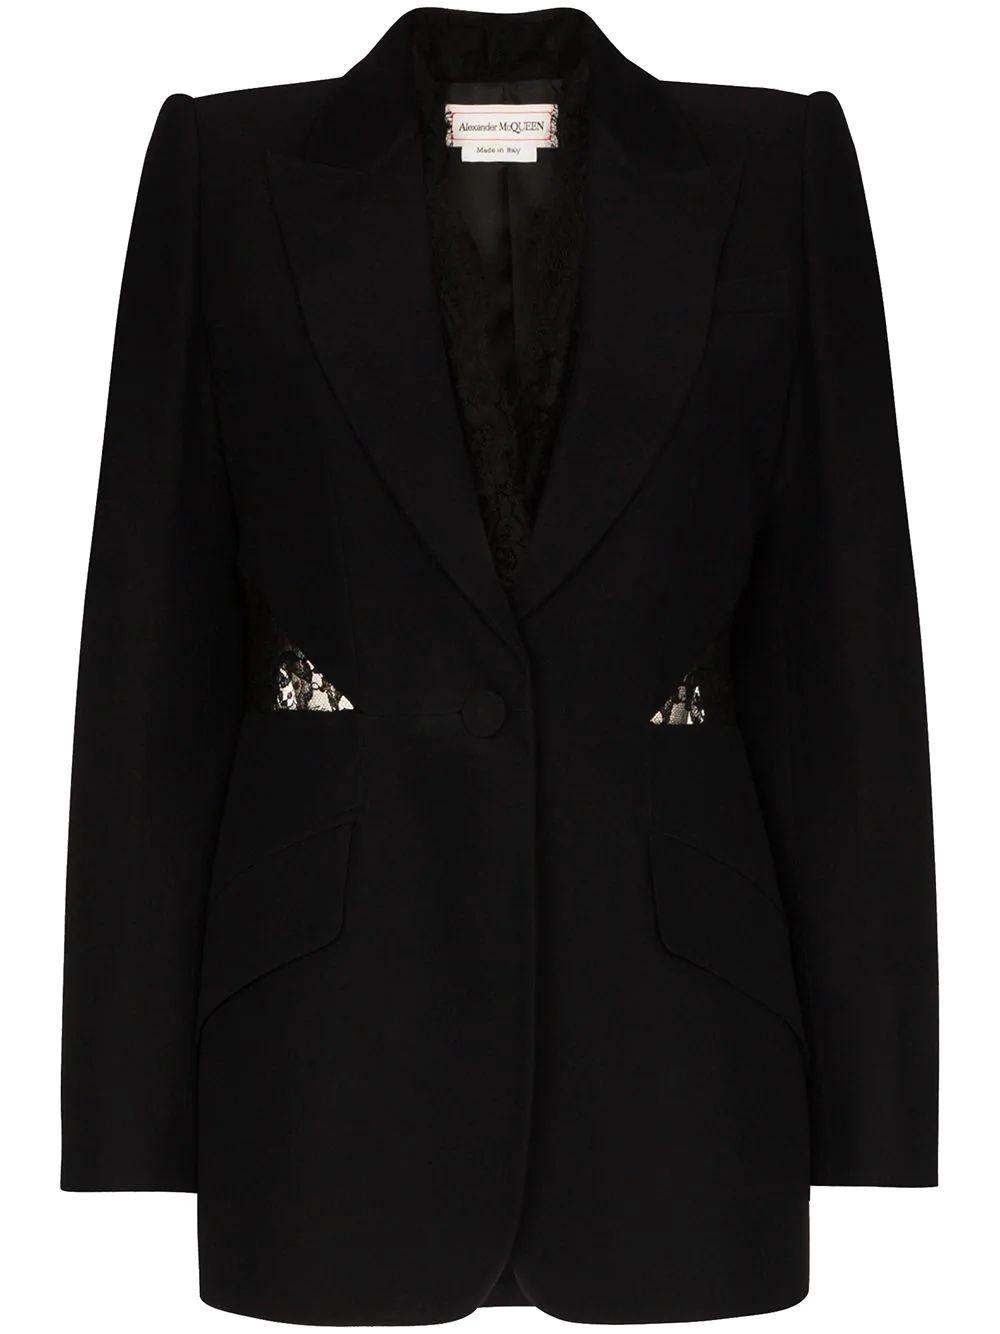 Crepe Blazer With Lace Detailing Item # 607334QEAAA